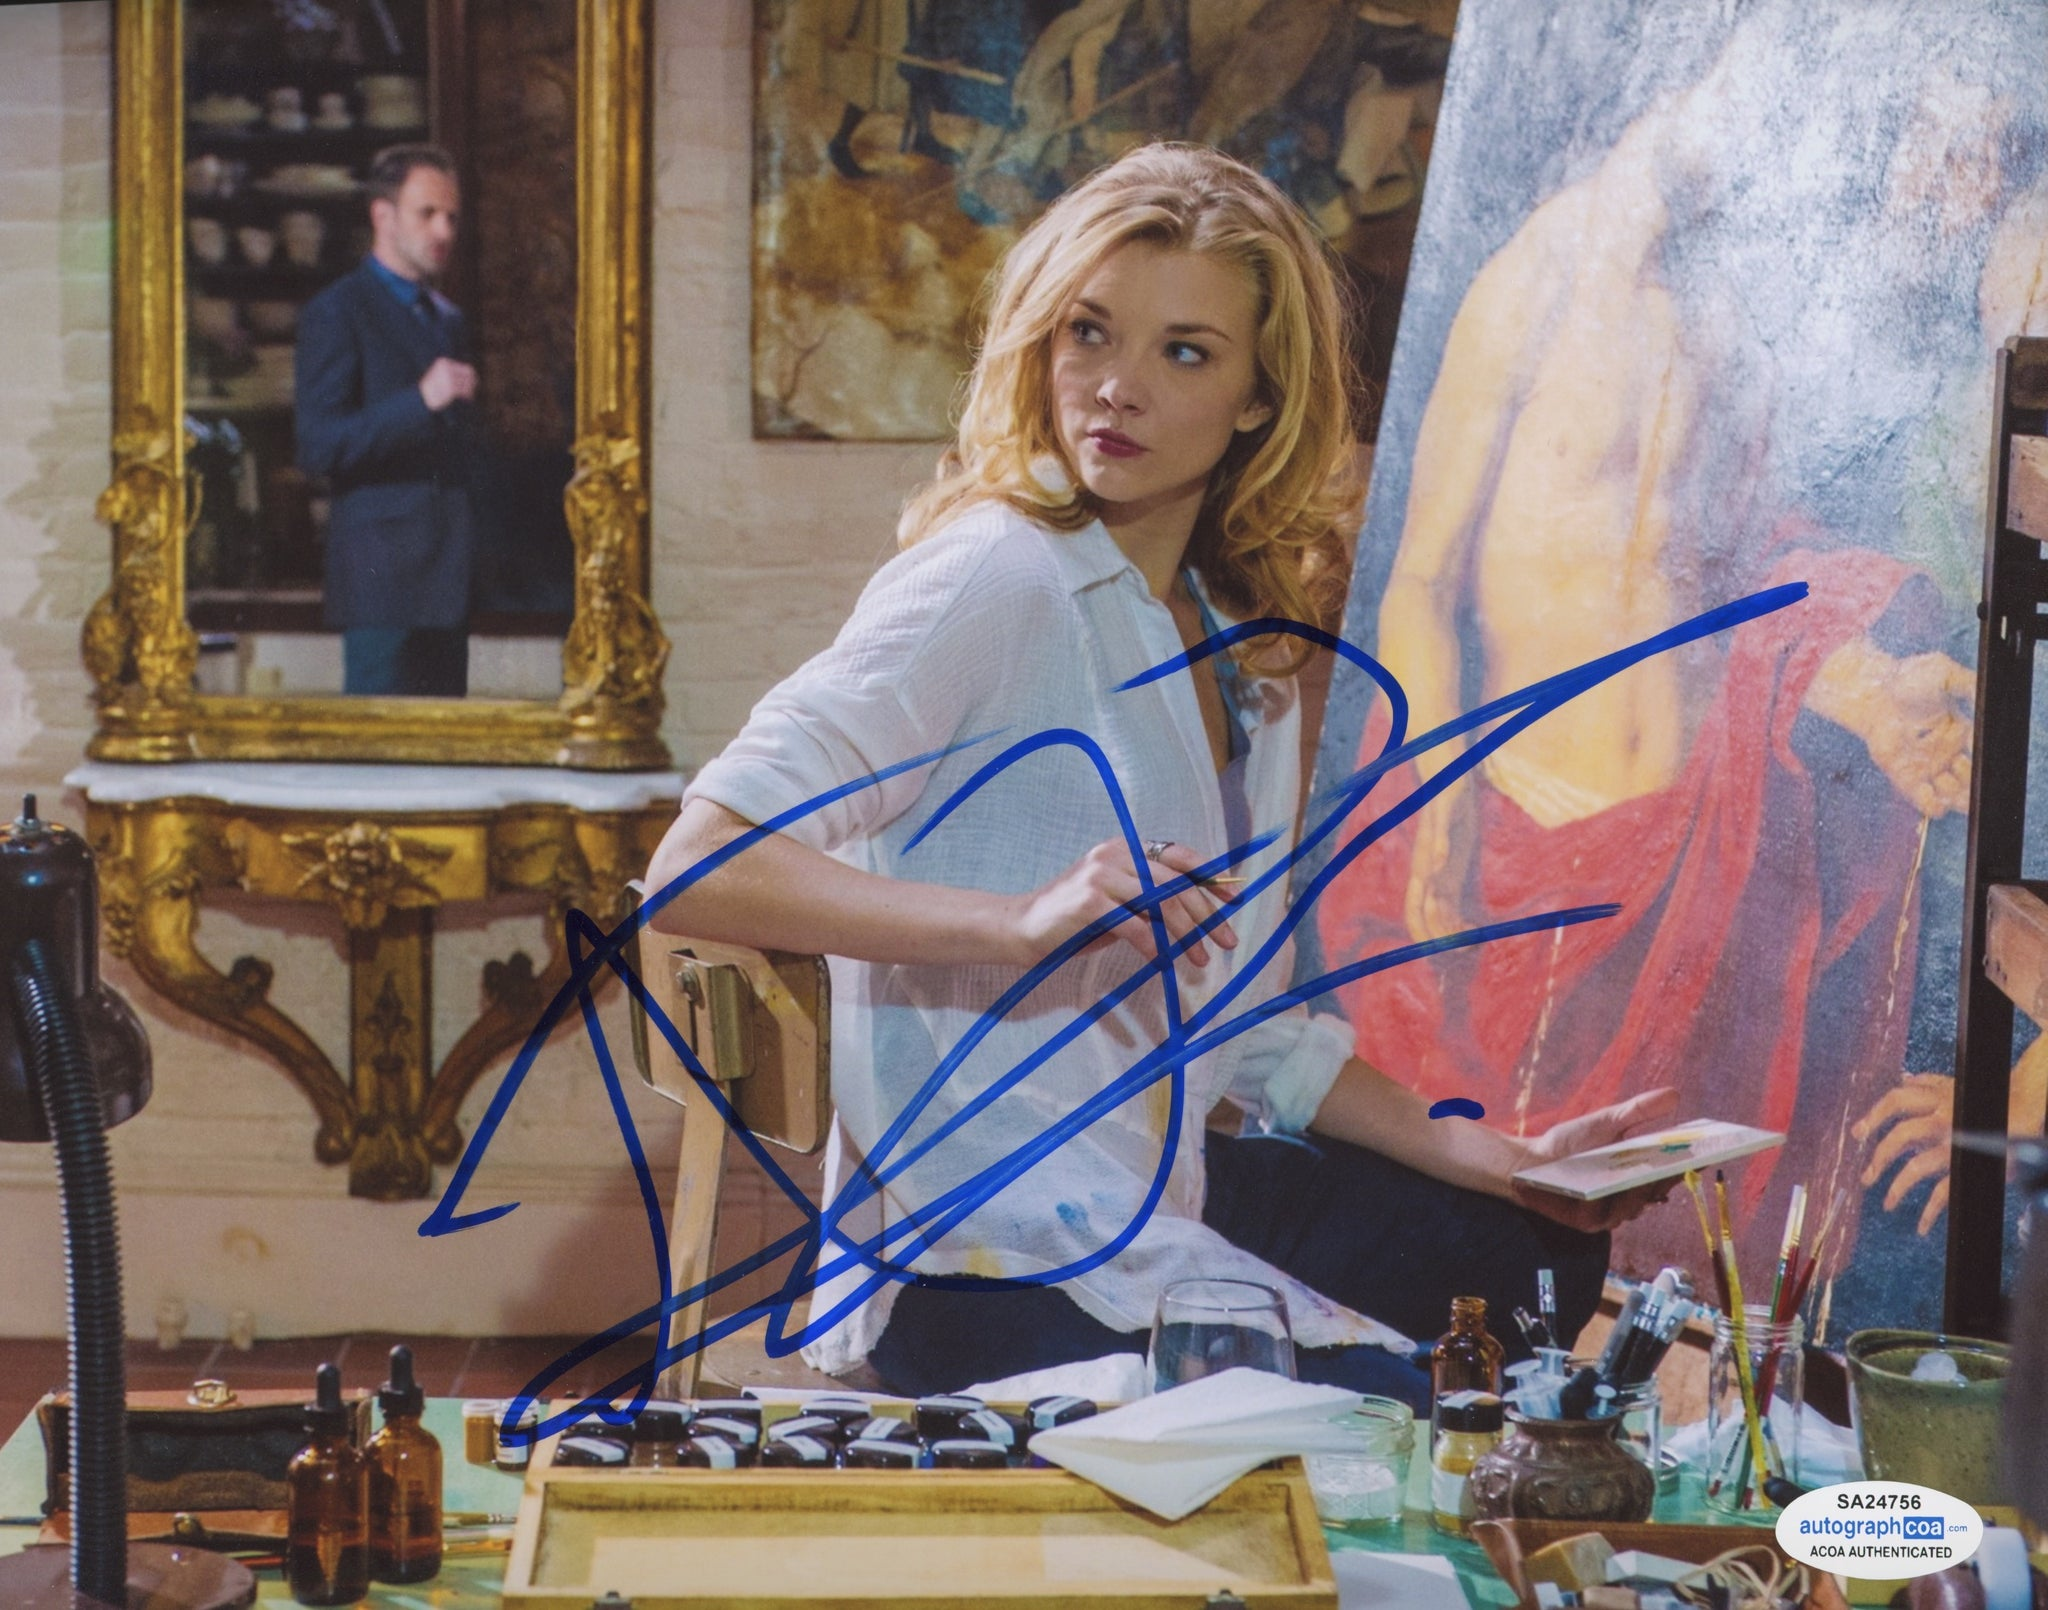 Natalie Dormer Sexy Elementary Signed Autograph 8x10 Photo #25 - Outlaw Hobbies Authentic Autographs